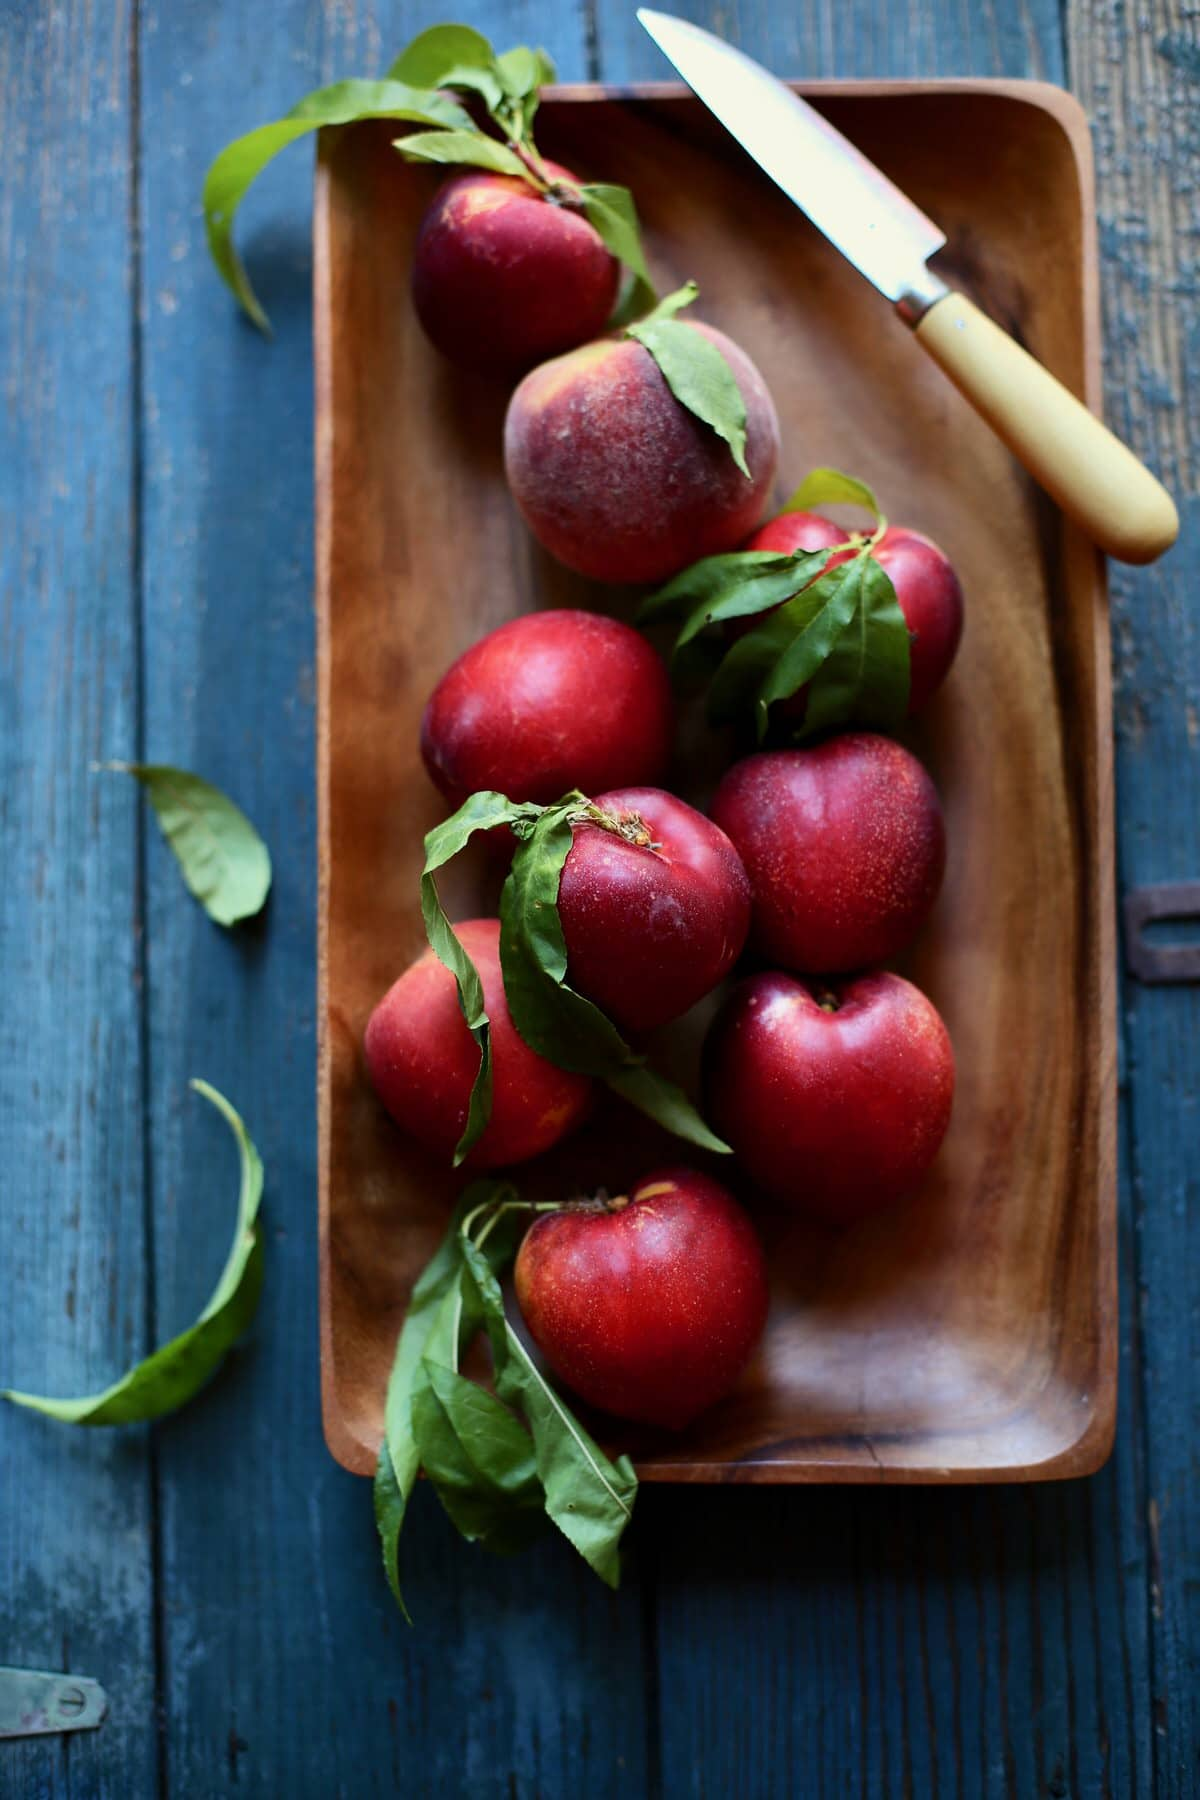 A wooden tray of nectarines on a blue table with a knife sitting next to it